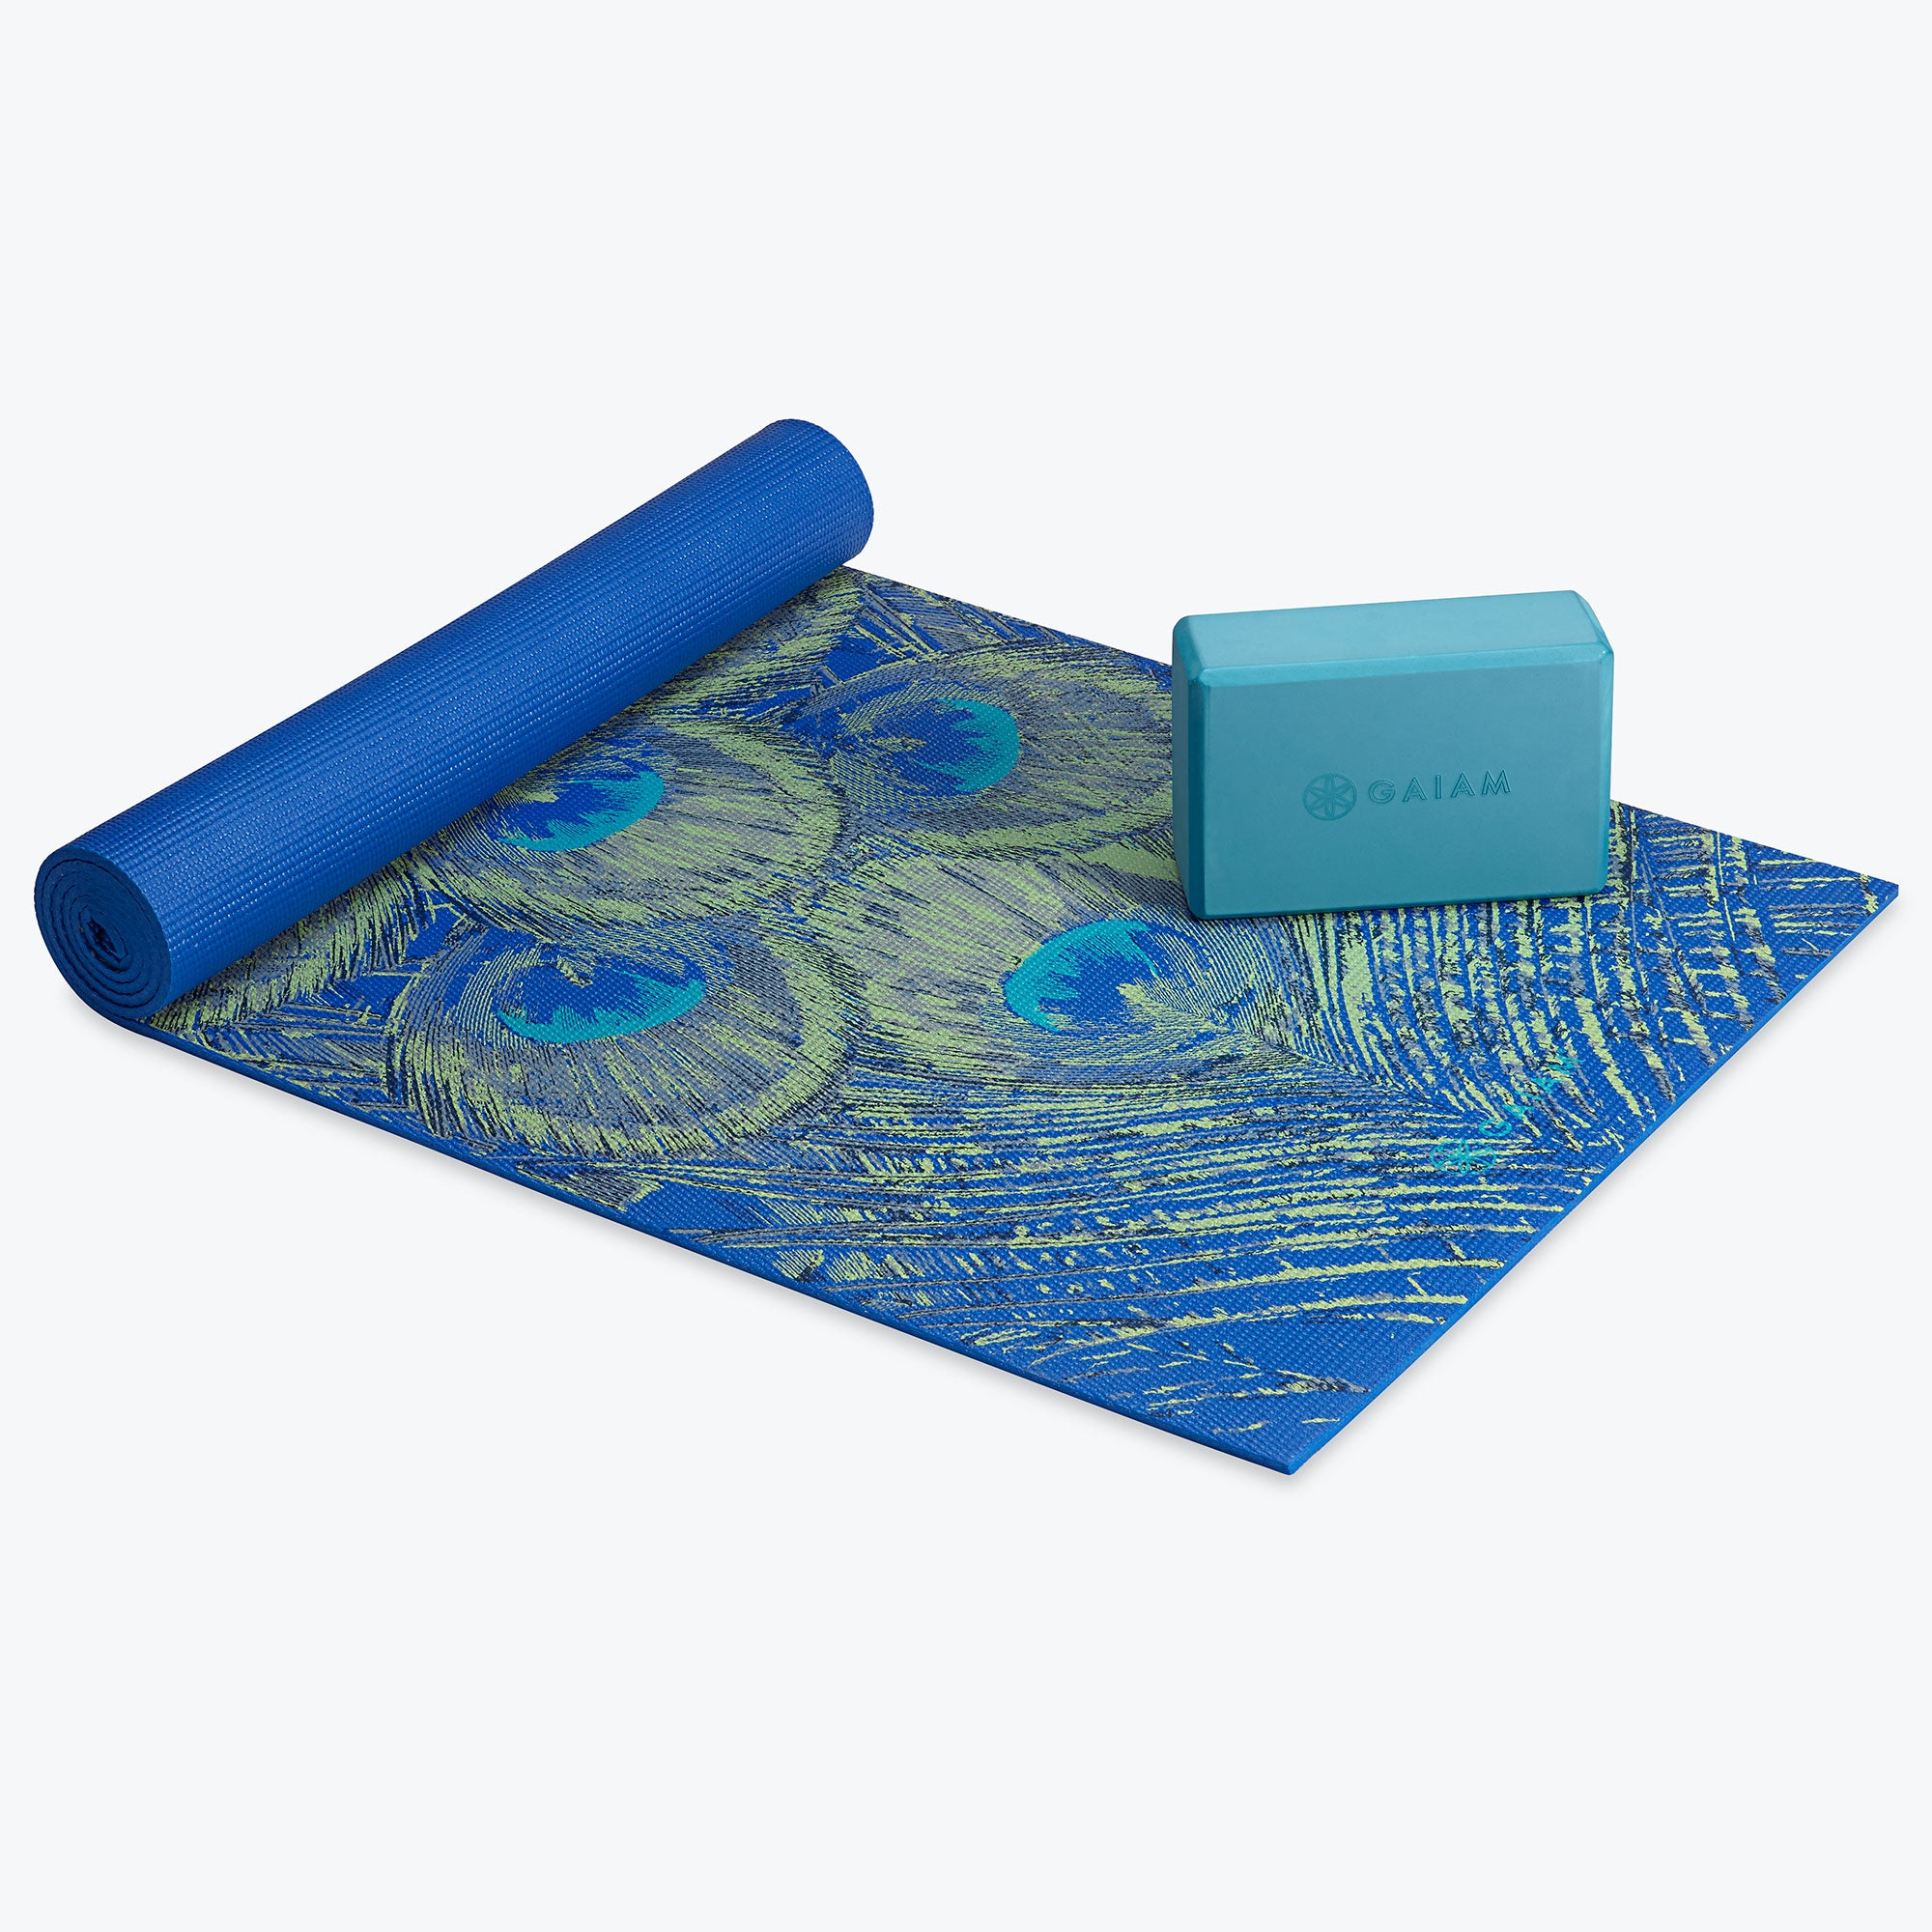 Premium Cushion Amp Support Yoga Kit Gaiam